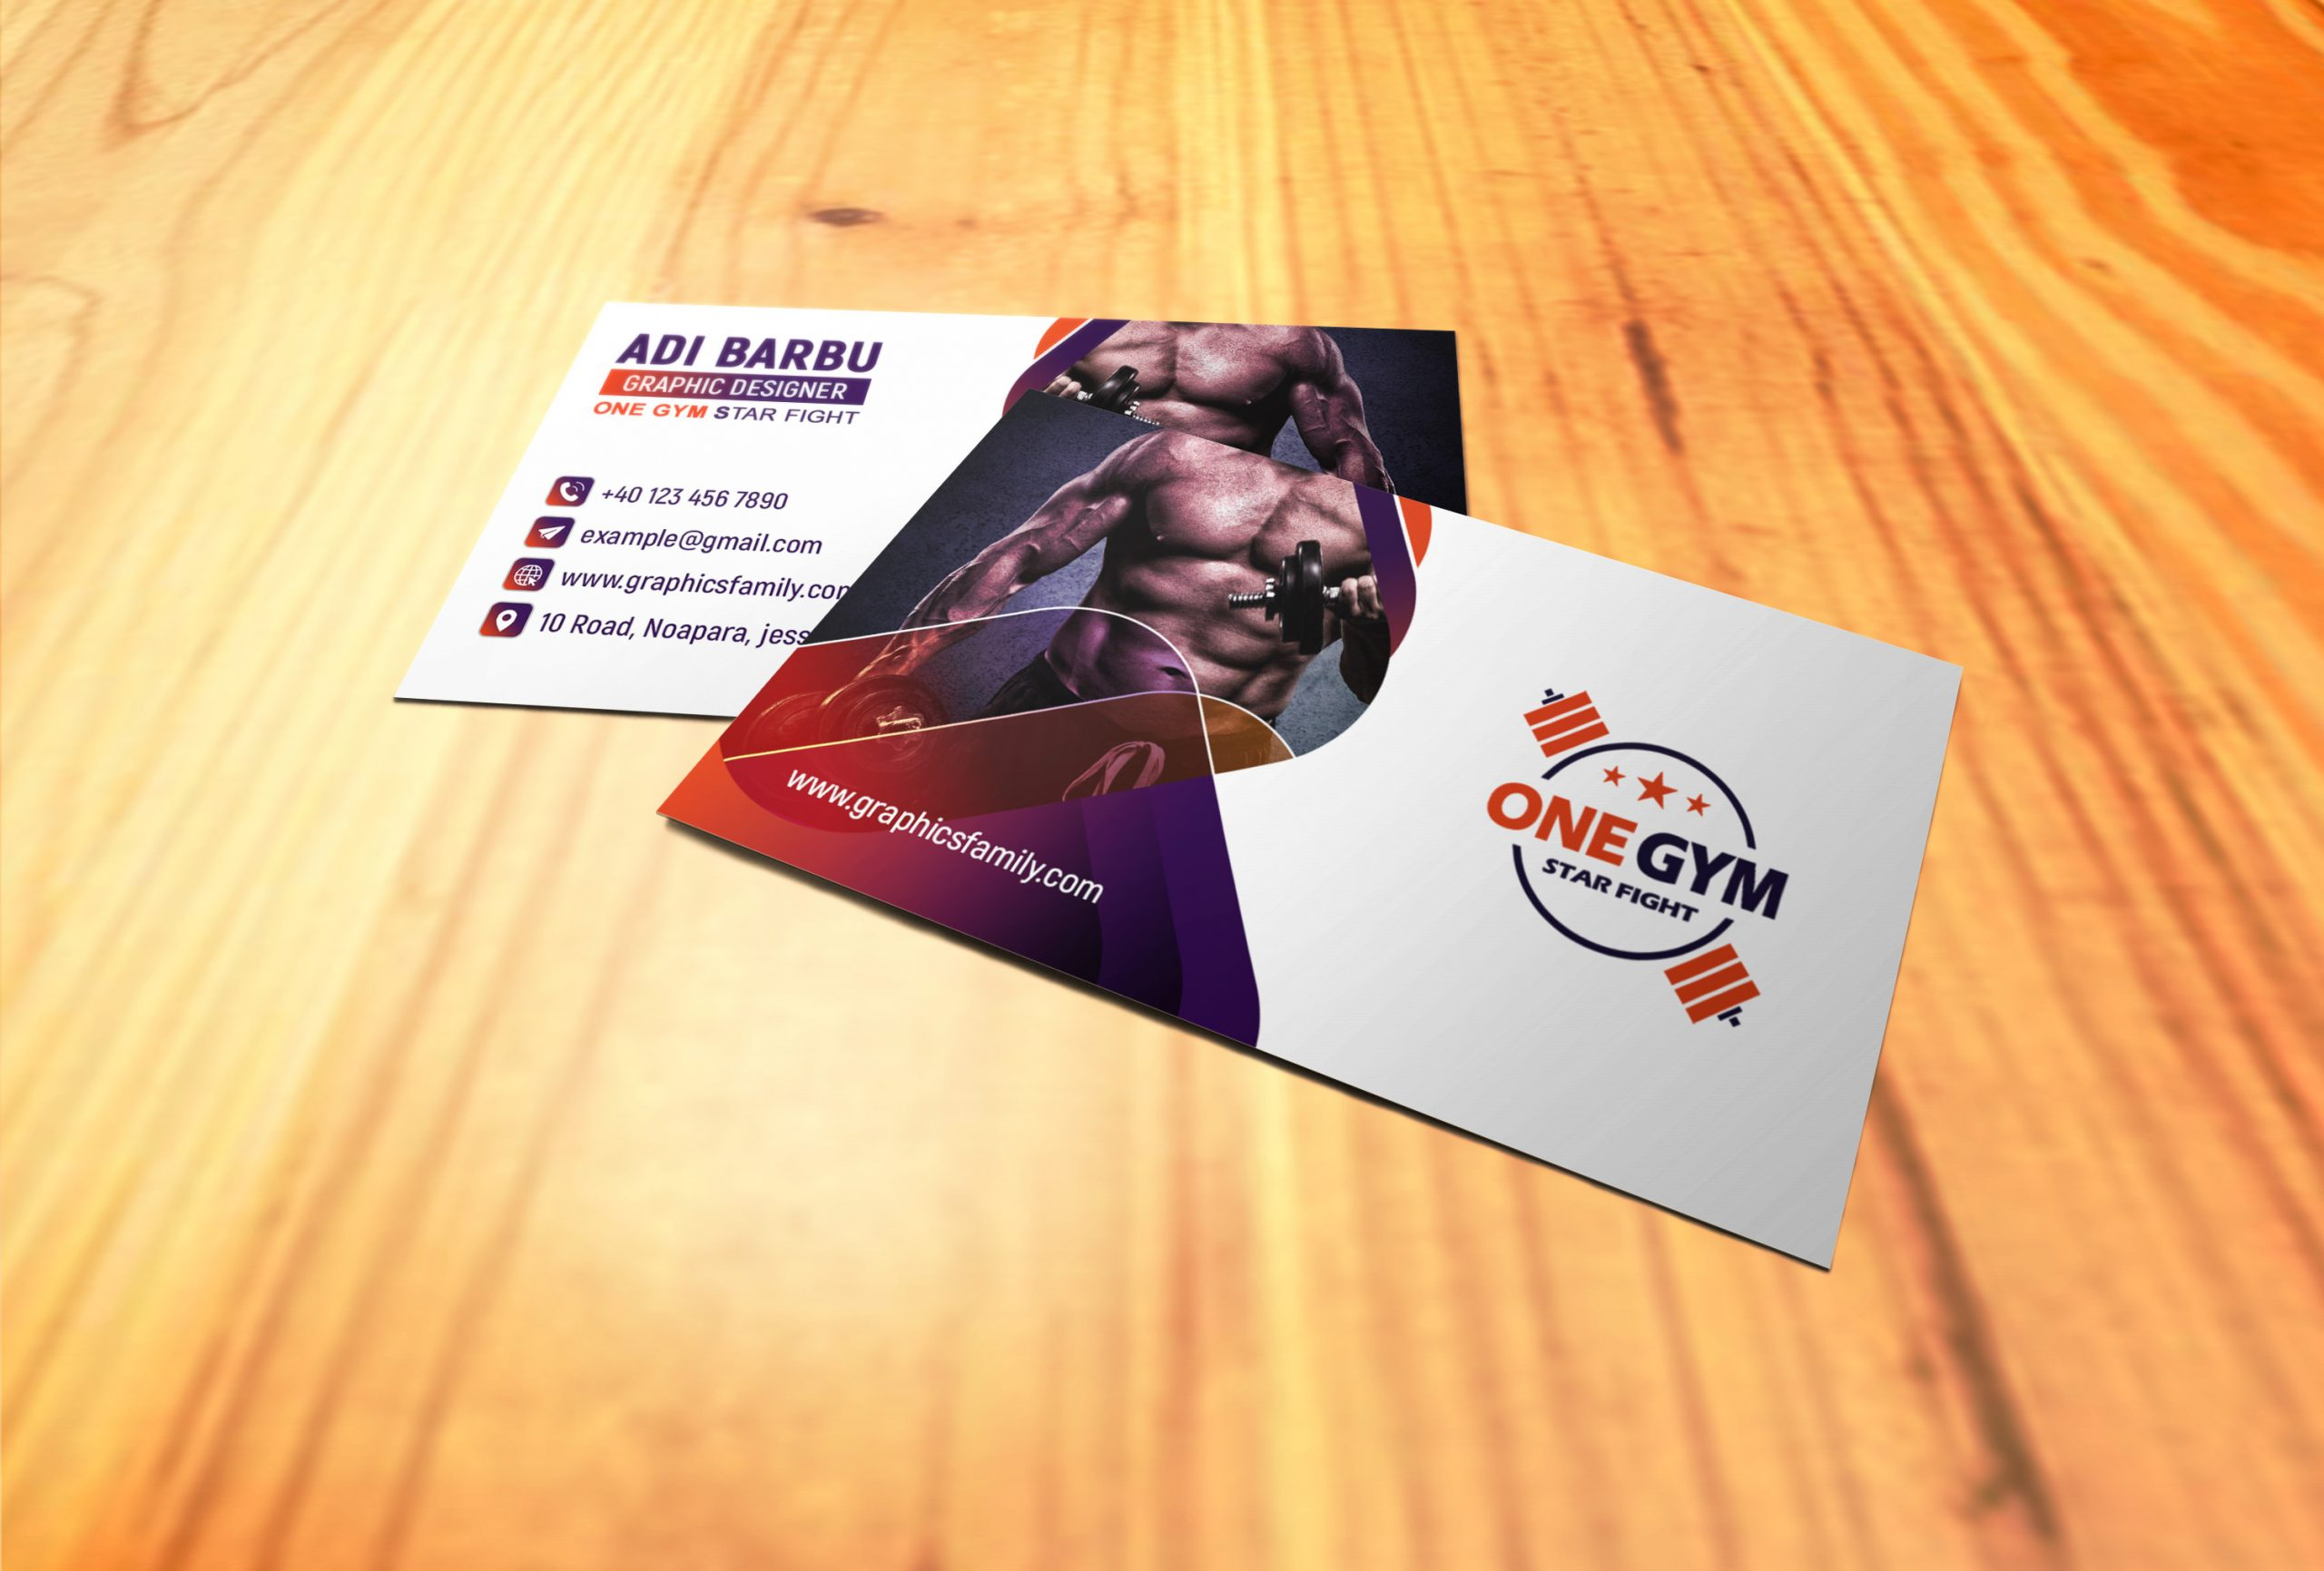 Modern Fitness Personal Trainer with Photo Business Card Design Download